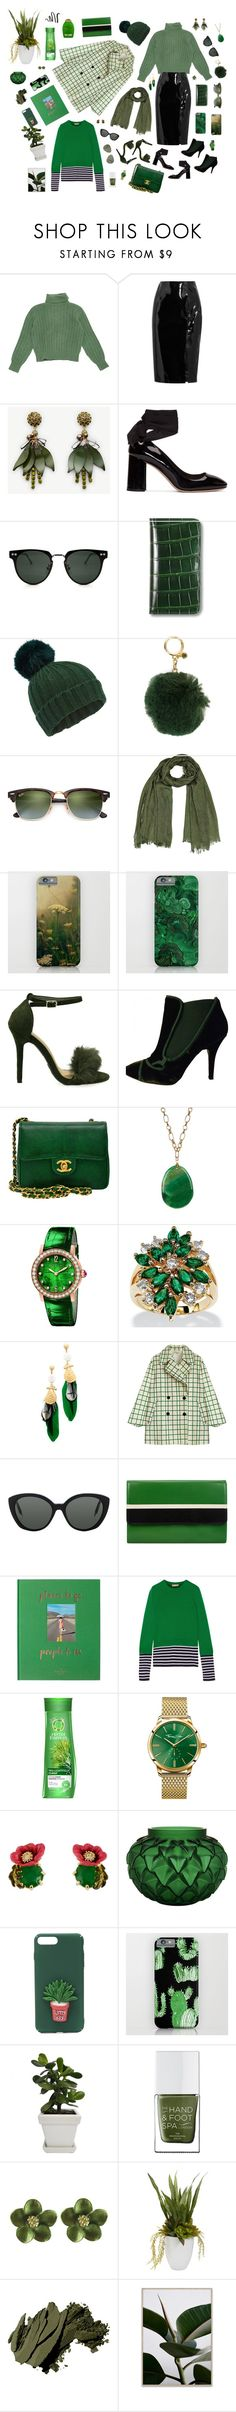 """Green Space"" by kris-tin-22 ❤ liked on Polyvore featuring Yves Saint Laurent, Topshop Unique, Ann Taylor, Miu Miu, Spitfire, Asprey, Miss Selfridge, MICHAEL Michael Kors, Ray-Ban and Givenchy"